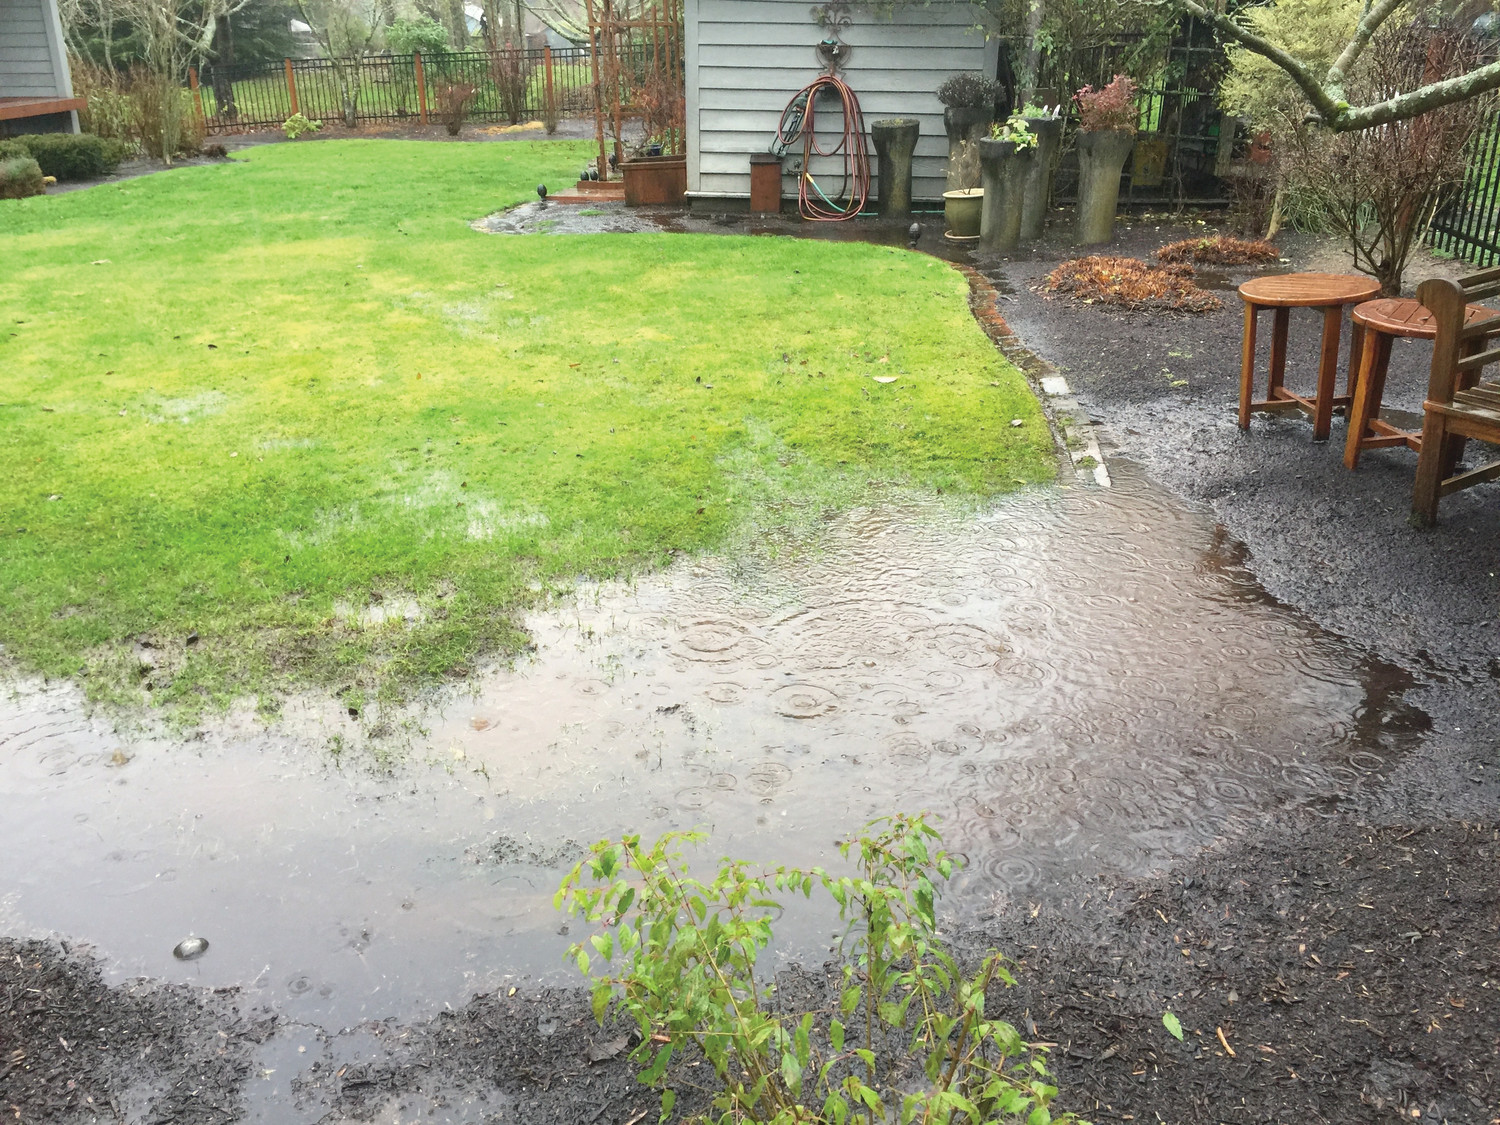 Water pools in a low spot on a homeowner's lawn near Langley, Washington, in December. The financial costs of poor drainage on properties can be substantial. Prevention is the cure.